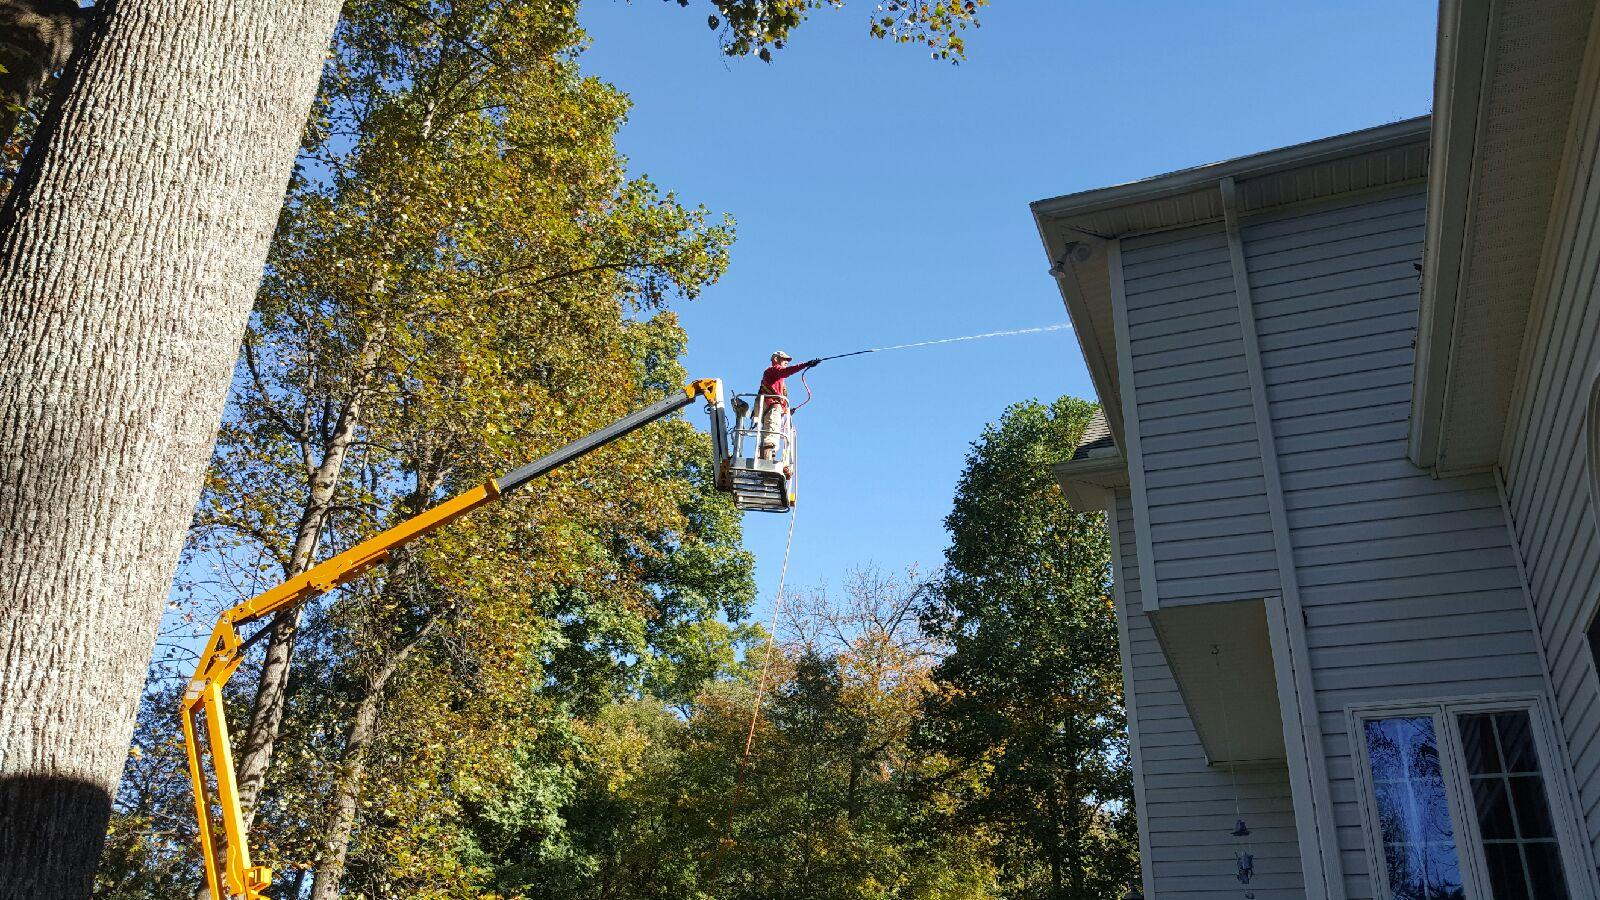 Boom Lift | House Washing Contractor in Hagerstown MD